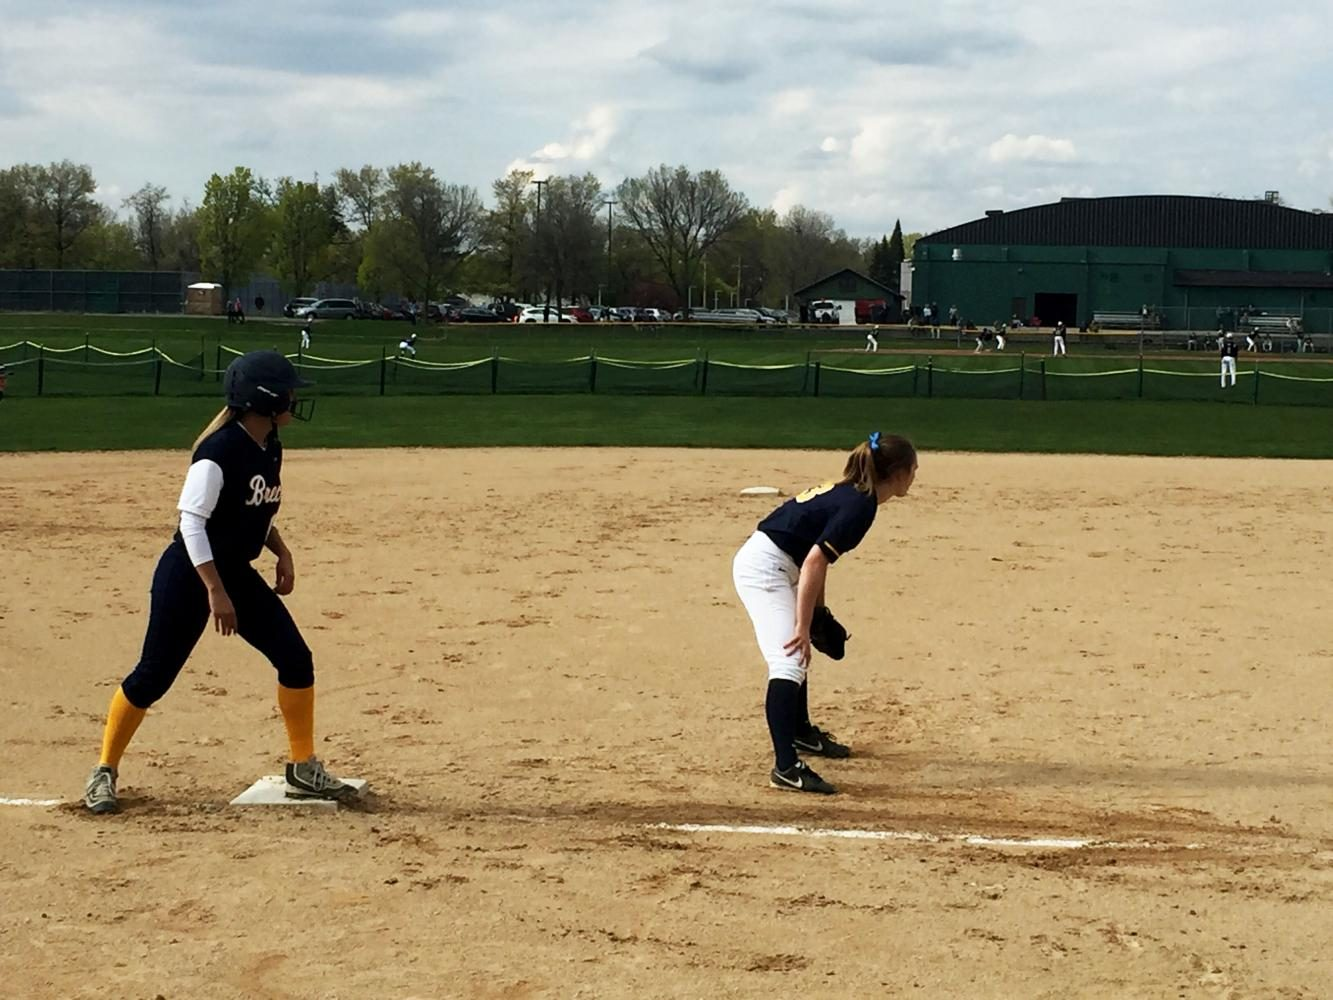 Senior+third+baseman+Justine+Miller+holds+a+Breck+player+on+base+in+the+third+inning.